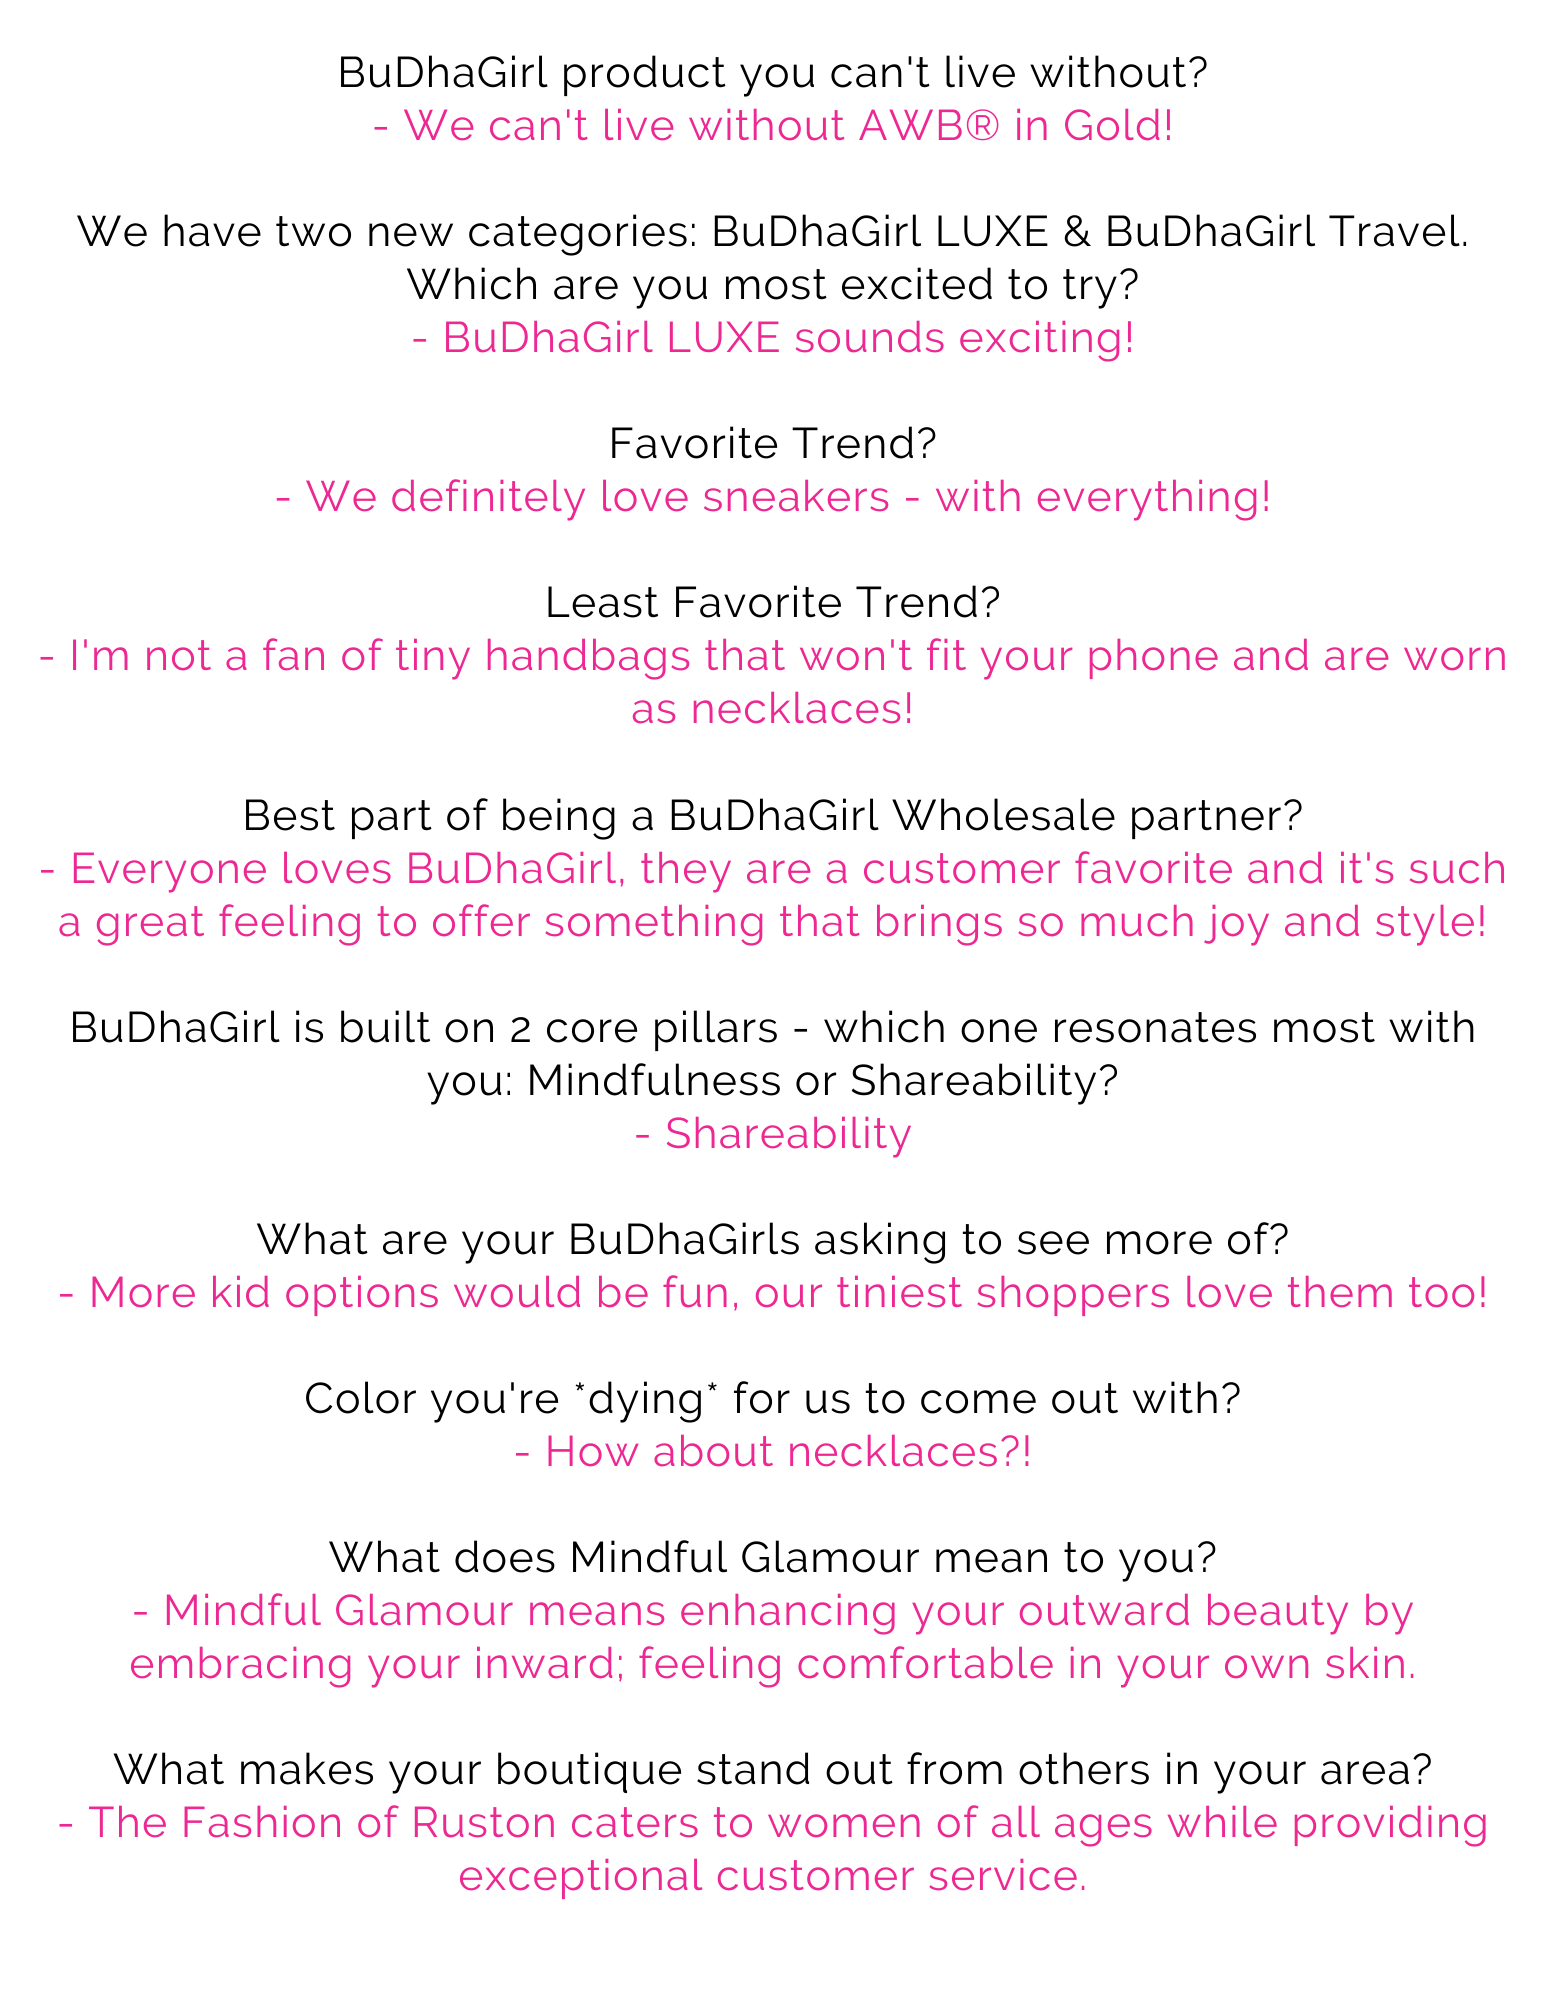 BuDhaGirl's June Store of the Month: The Fashion of Ruston Questionnaire